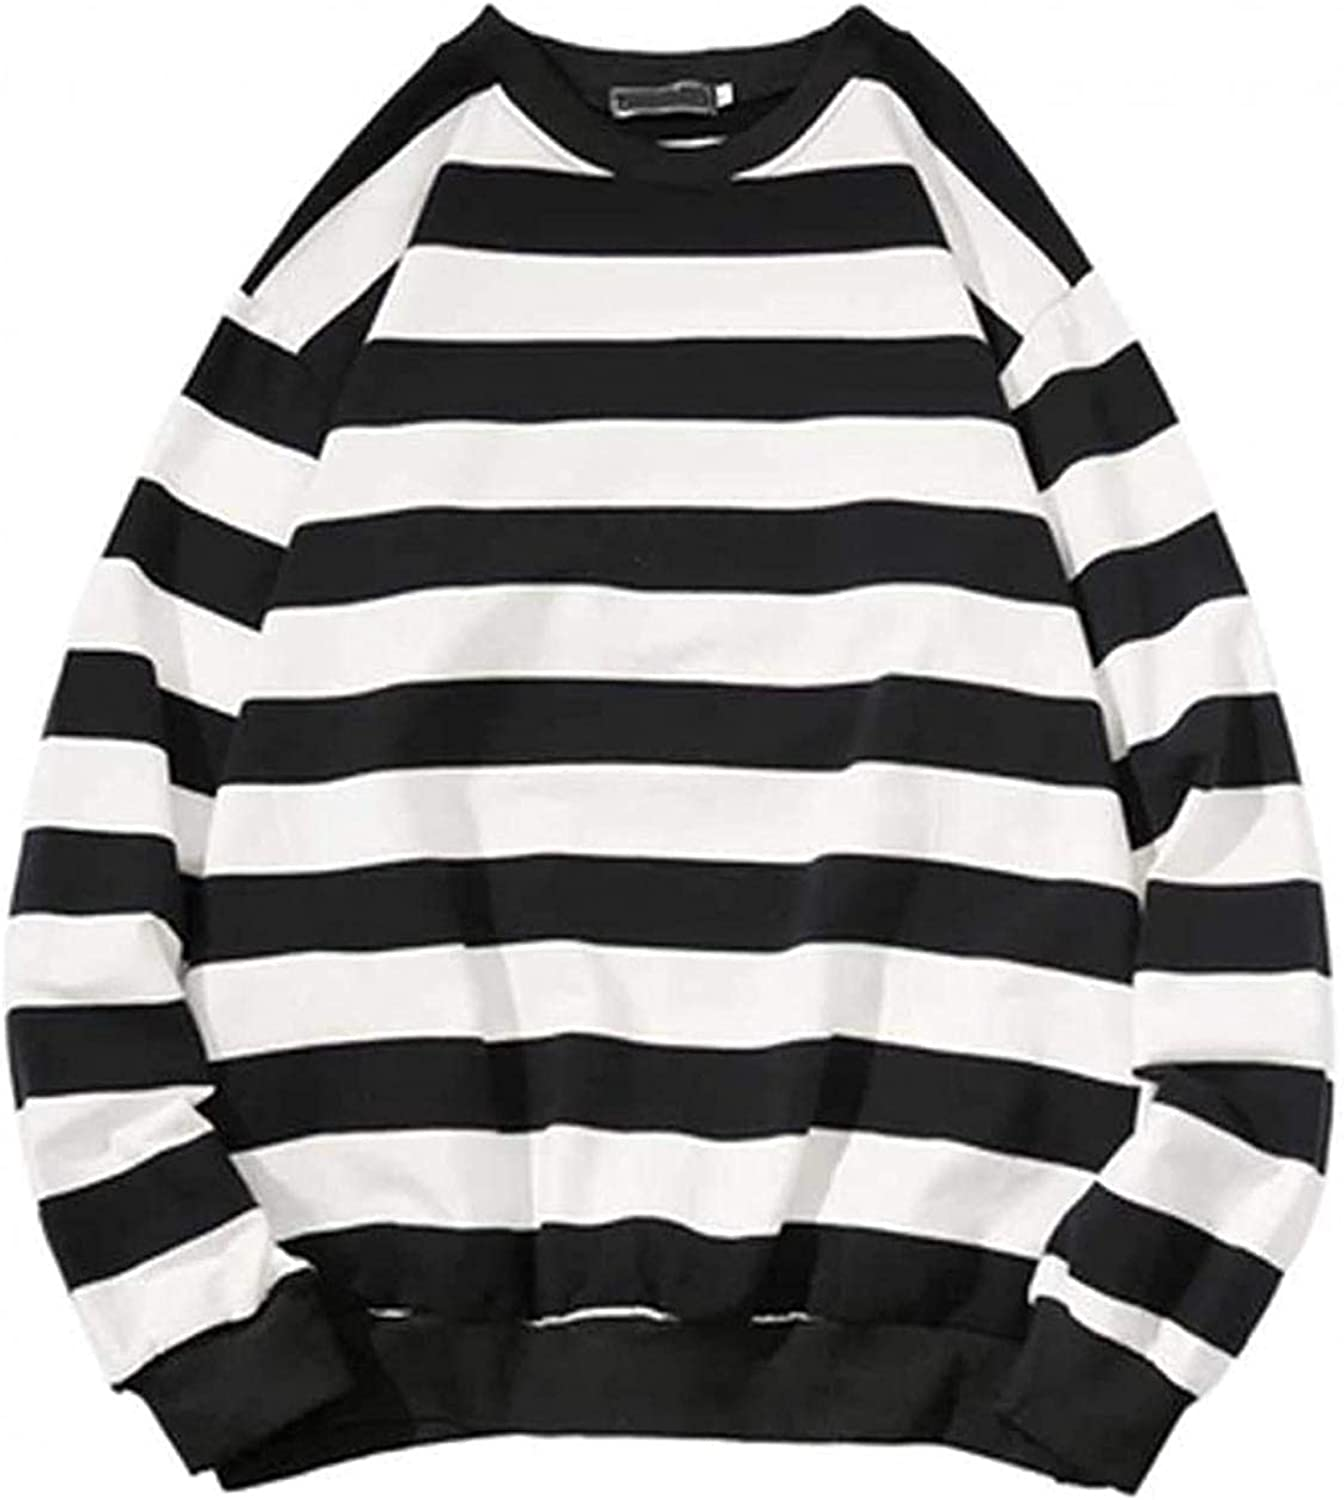 LEIYAN Mens Striped Round Neck Sweatshirt Casual Long Sleeve Comfortable Sports Jacket Sweater Outdoor